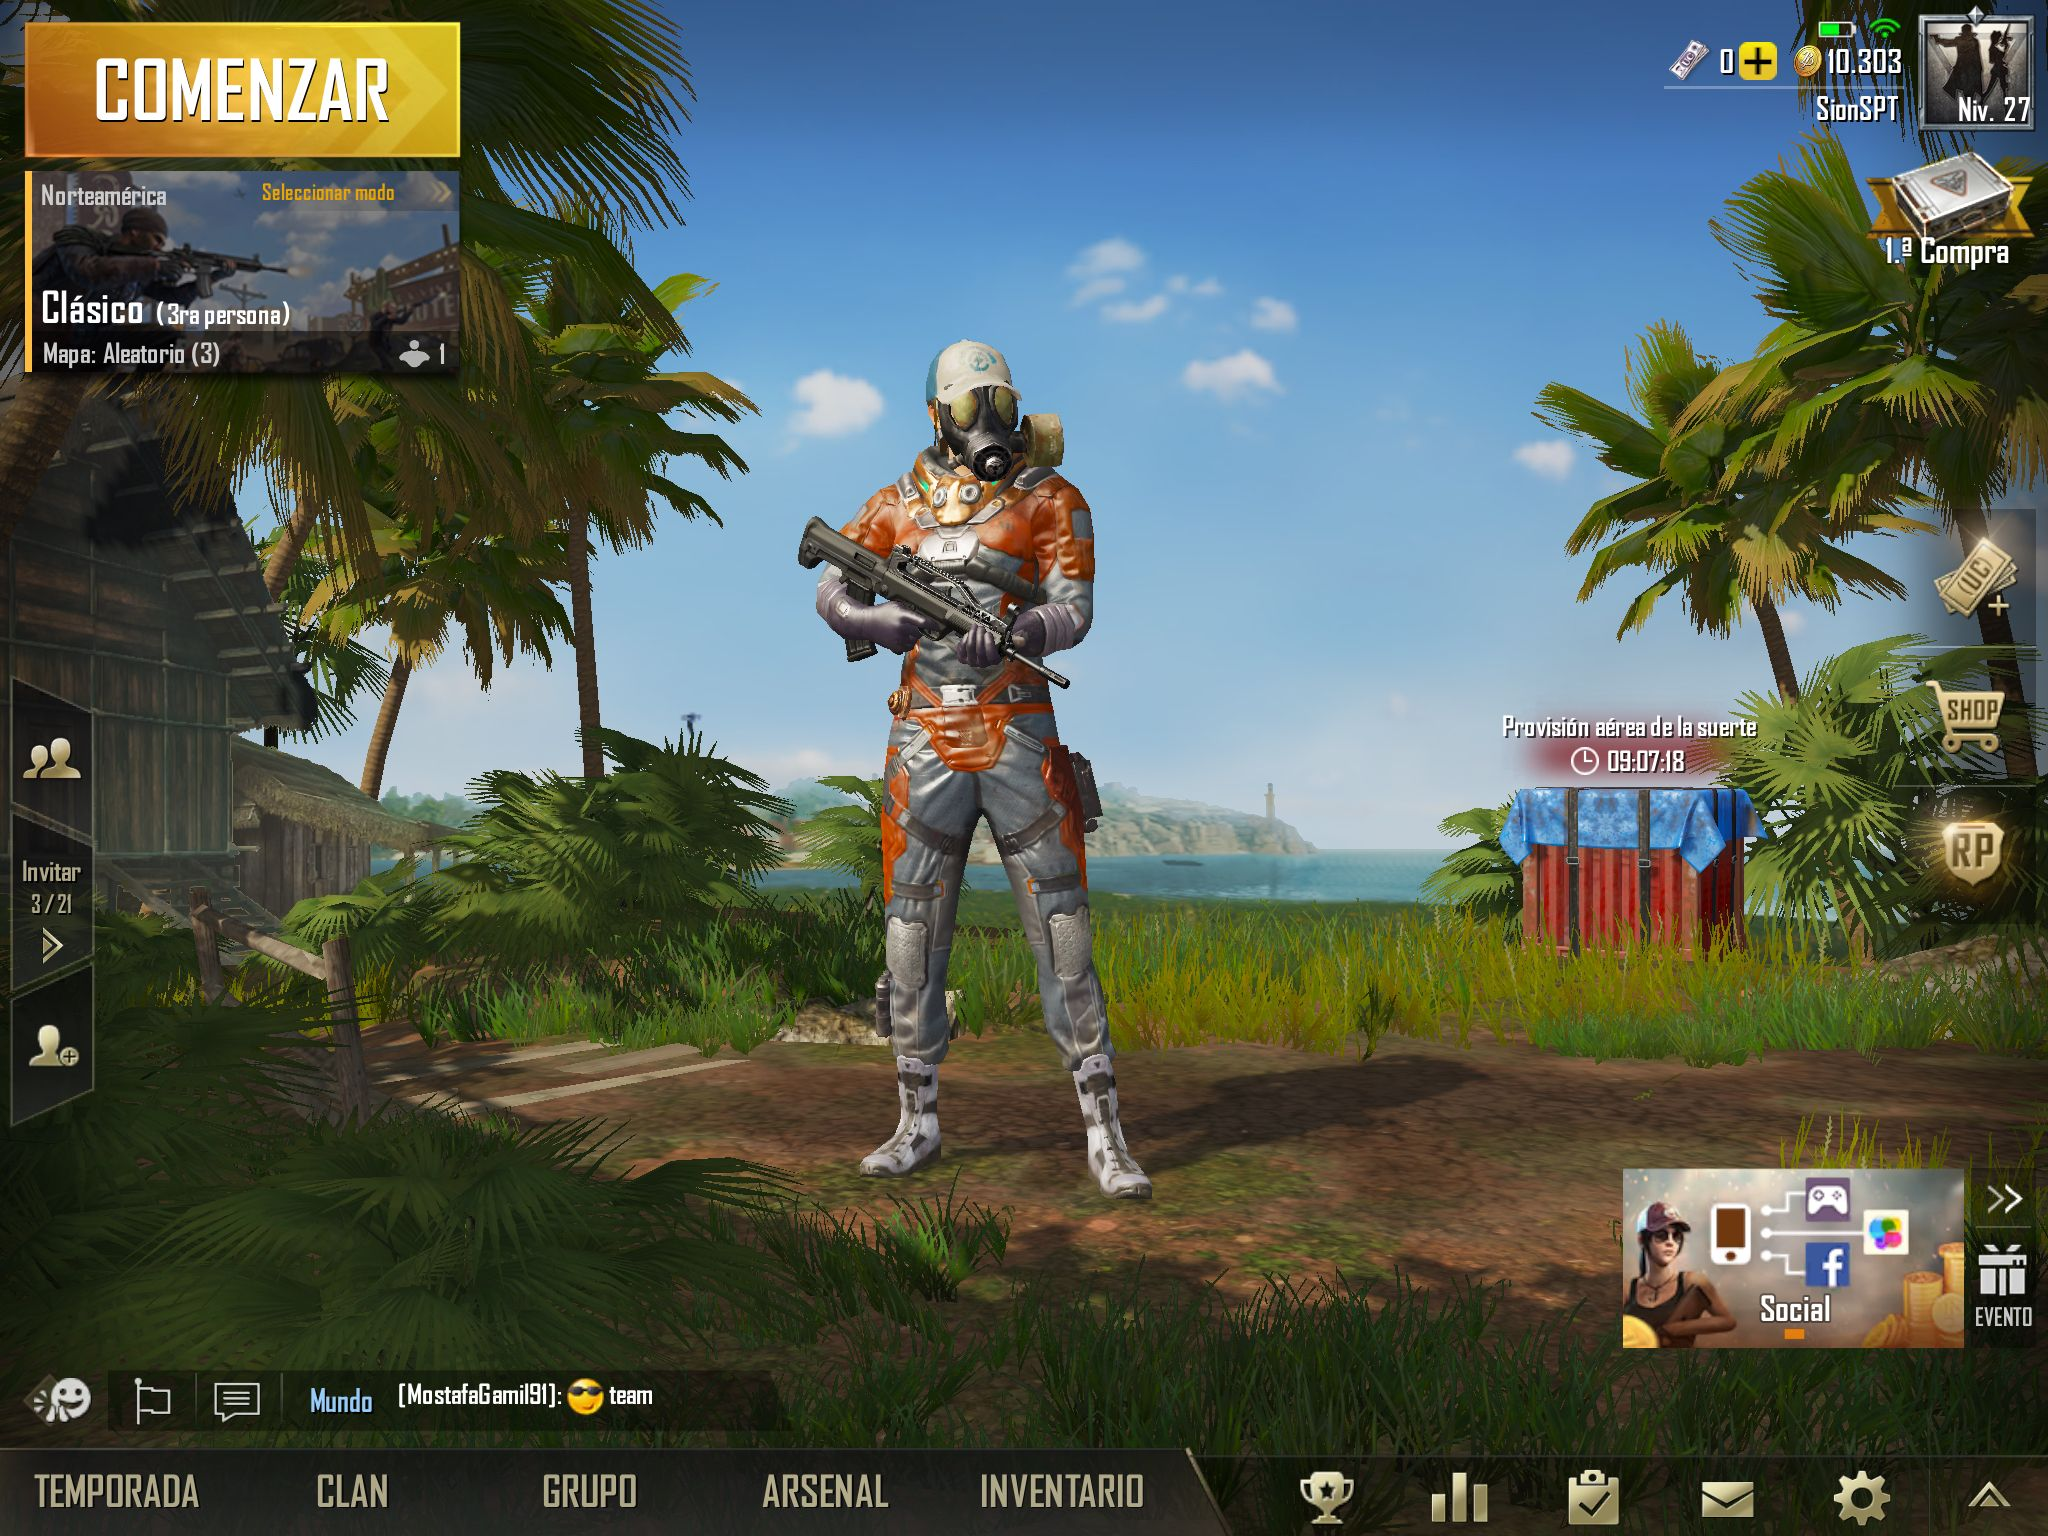 Pin by Leigod Accelerator on PUBG | Online games, Games